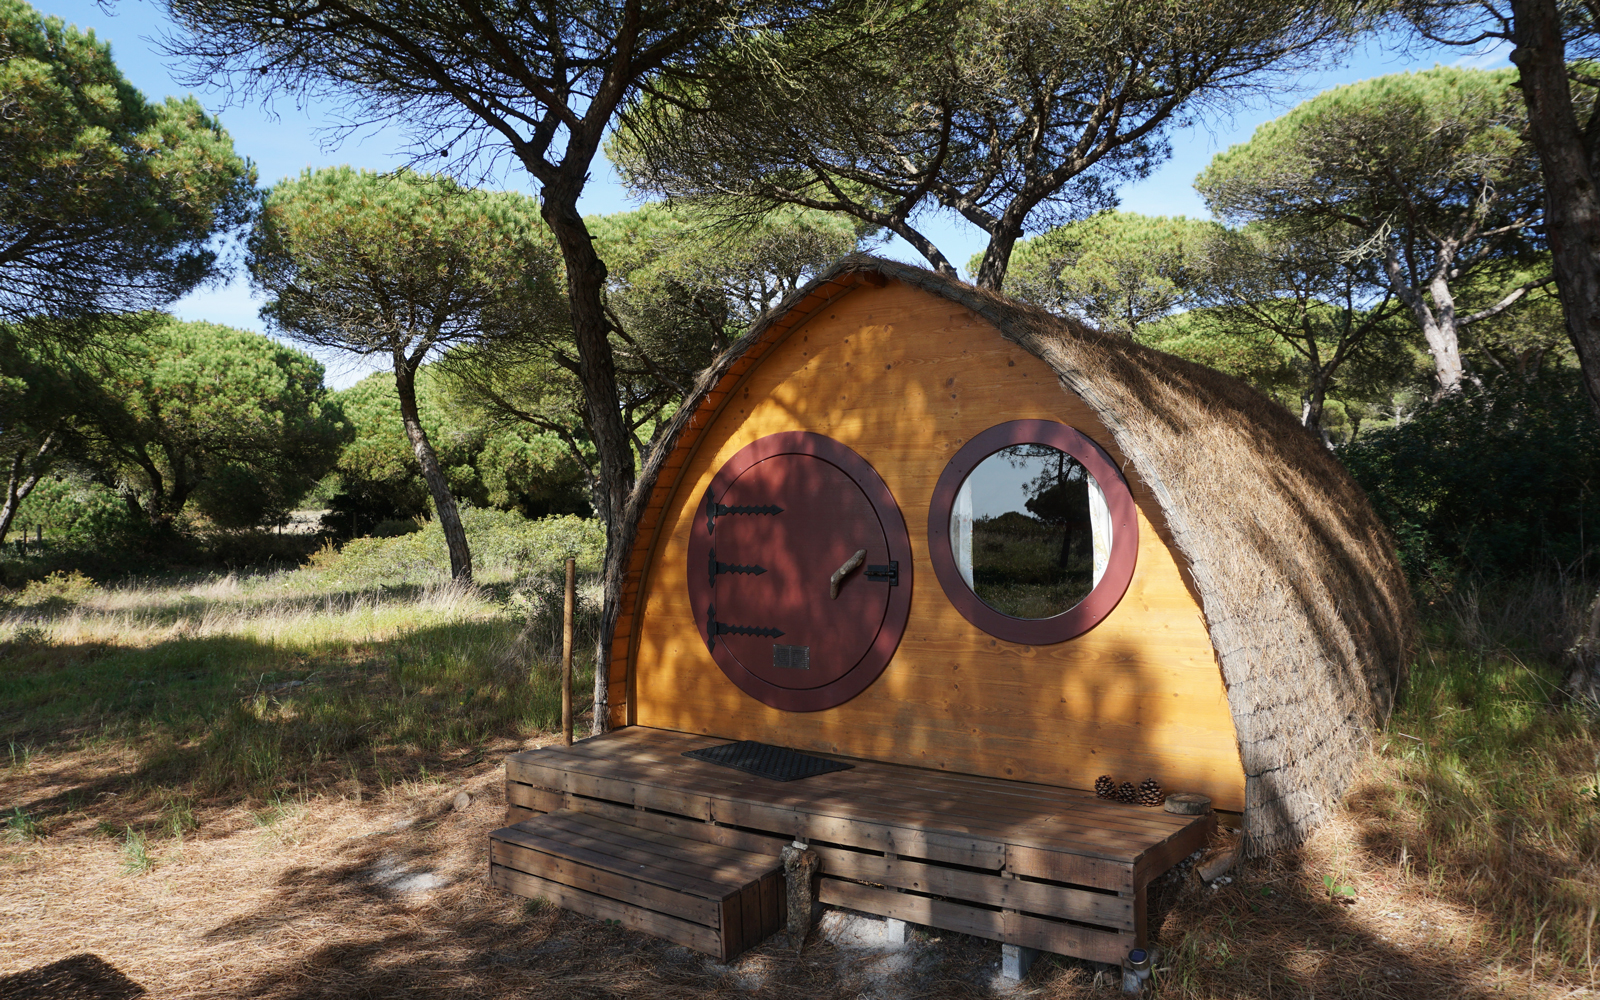 Hobbit house in Portugal